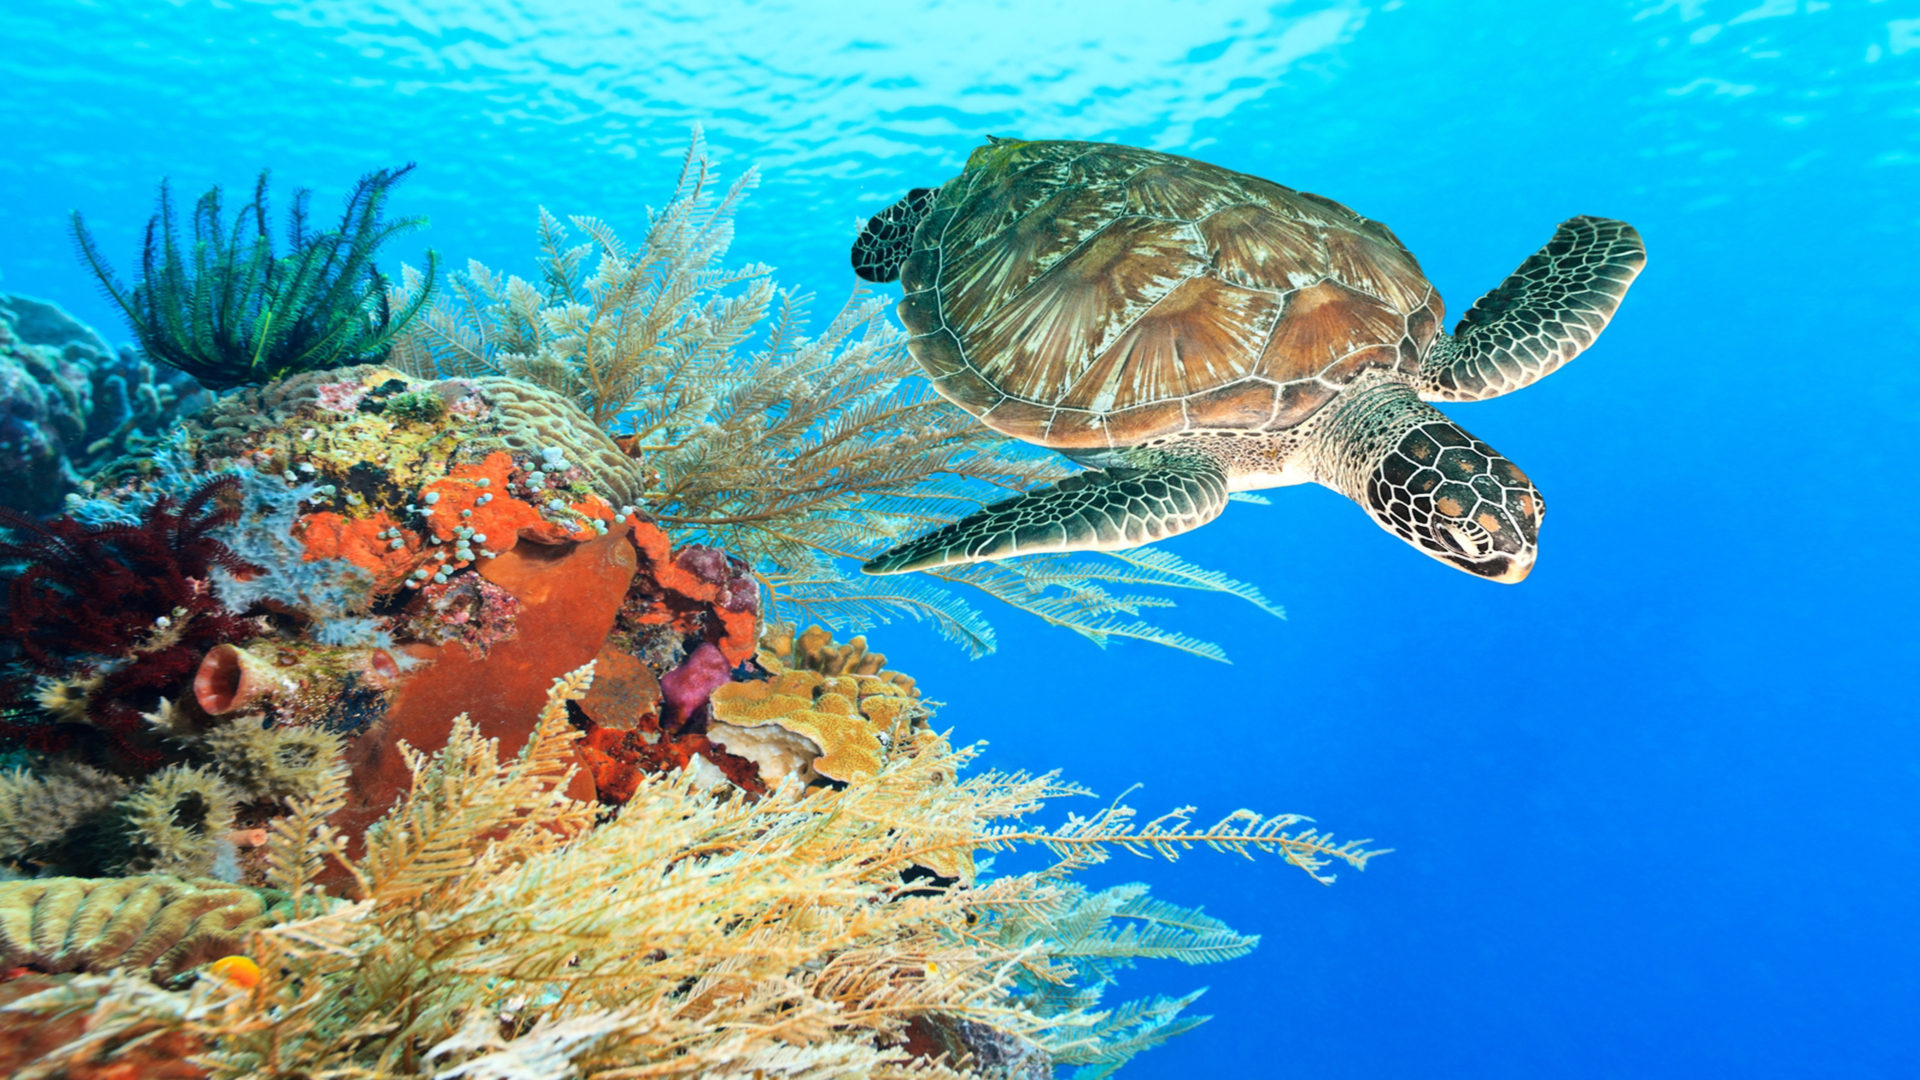 Fall Church Pictures Free Wallpaper Turtle Swimming Underwater Among The Coral Reef